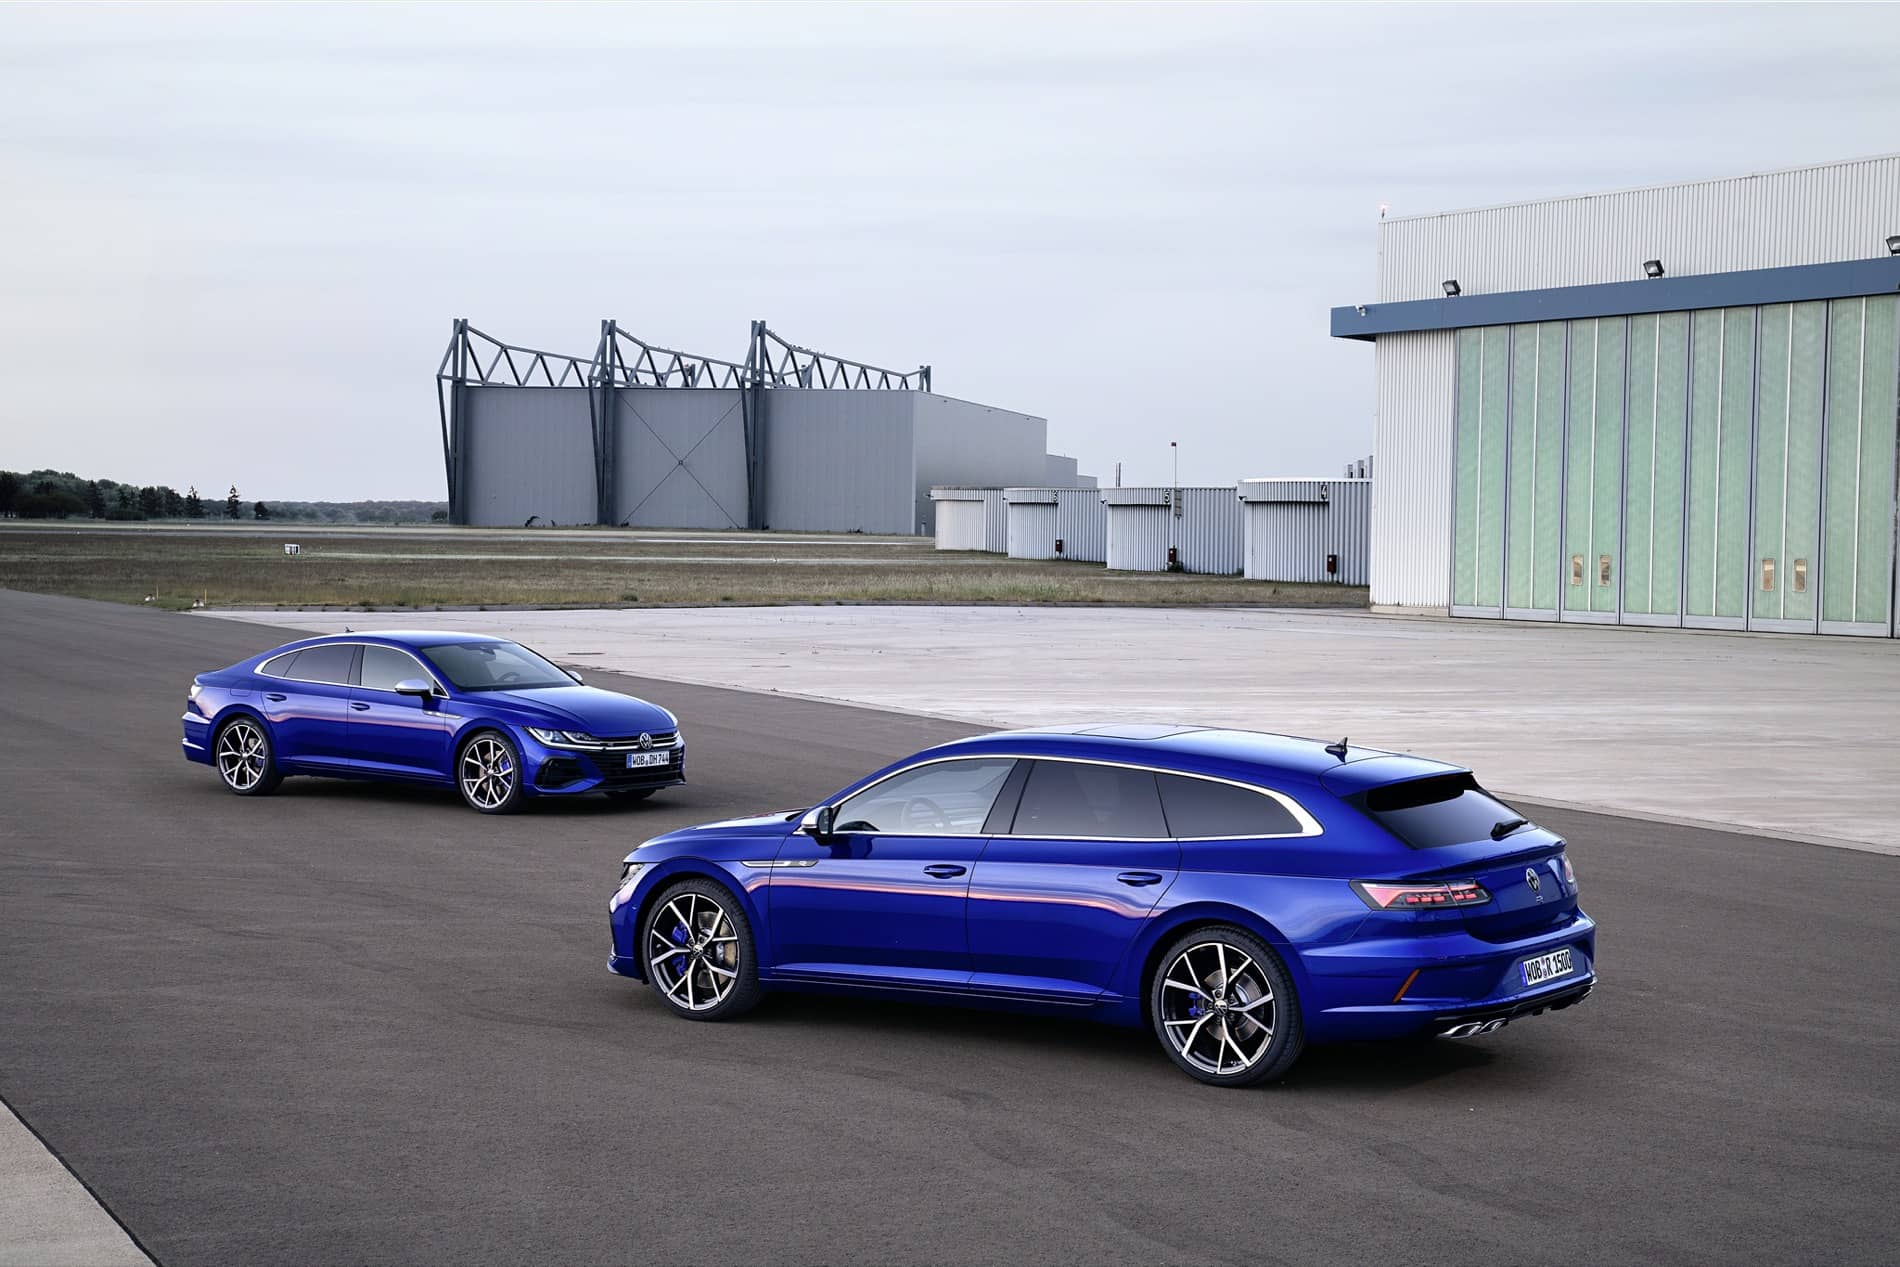 Volkswagen Arteon R and Arteon Shooting Brake R